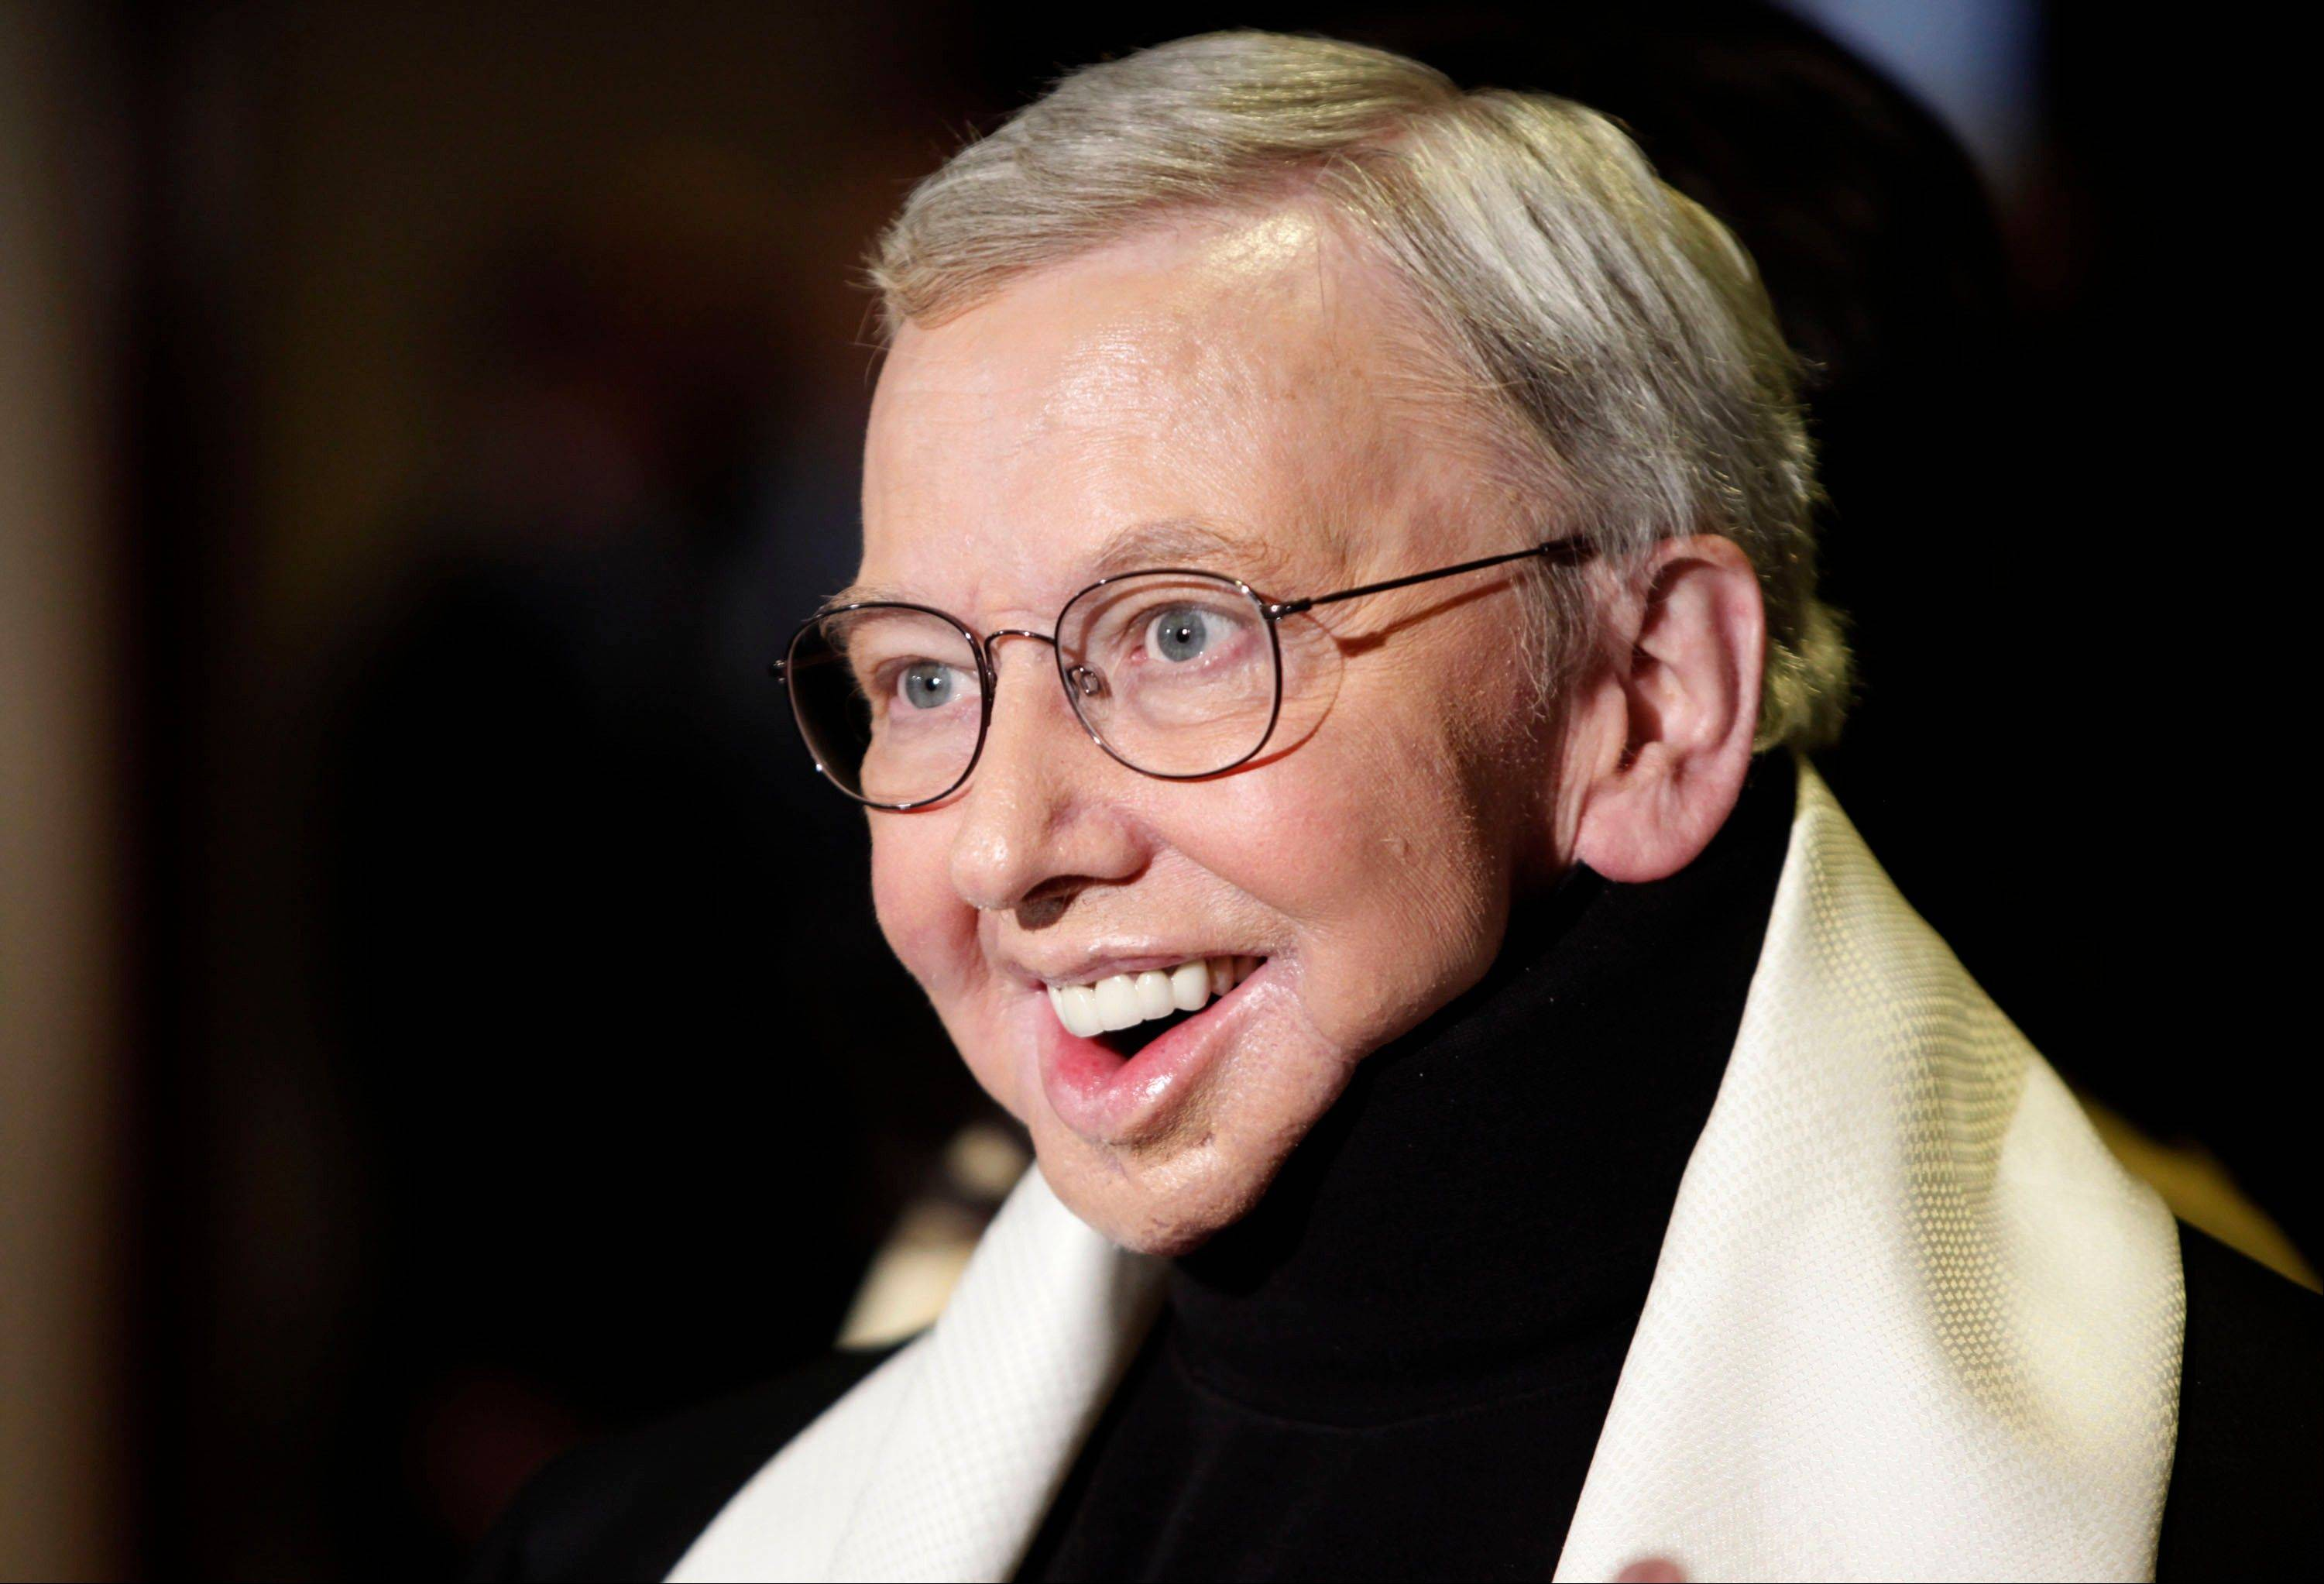 This Jan. 2009 file photo shows film critic and author Roger Ebert, recipient of the Honorary Life Member Award, at the Directors Guild of America Awards in Los Angeles. Ebert, the most famous and most popular film reviewer of his time, died April 4, 2013. He was 70.